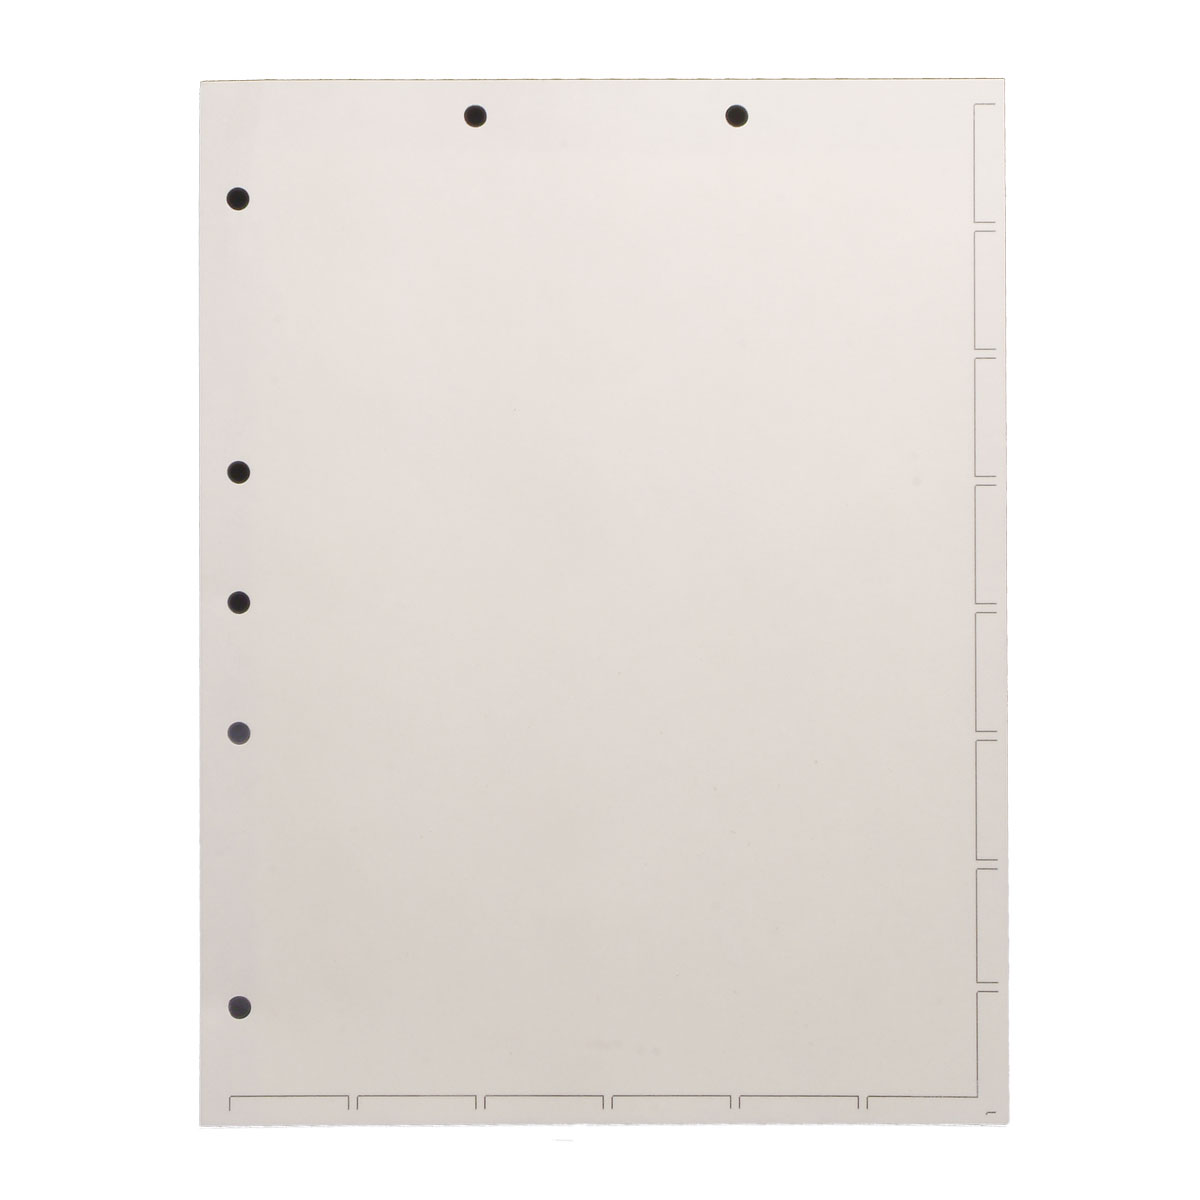 S-9244 - Chart Divider Sheets for Stick-On Tabs, Letter Size, White (Box of 250)